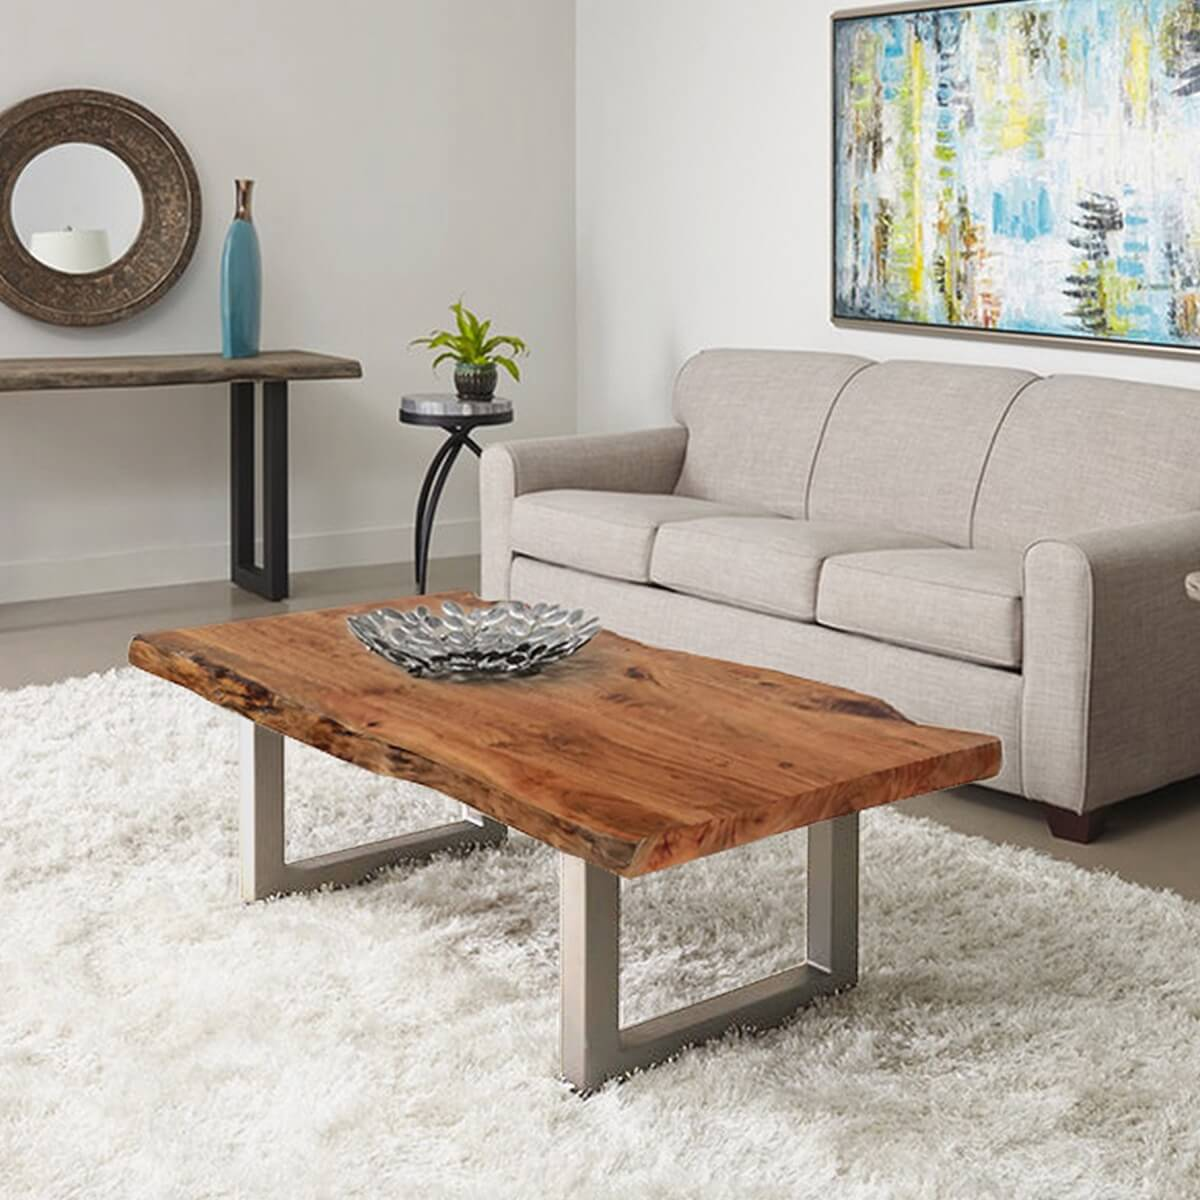 "Long Coffee Table Legs: Natural Edge Acacia Wood & Steel 55"" Long Coffee Table"